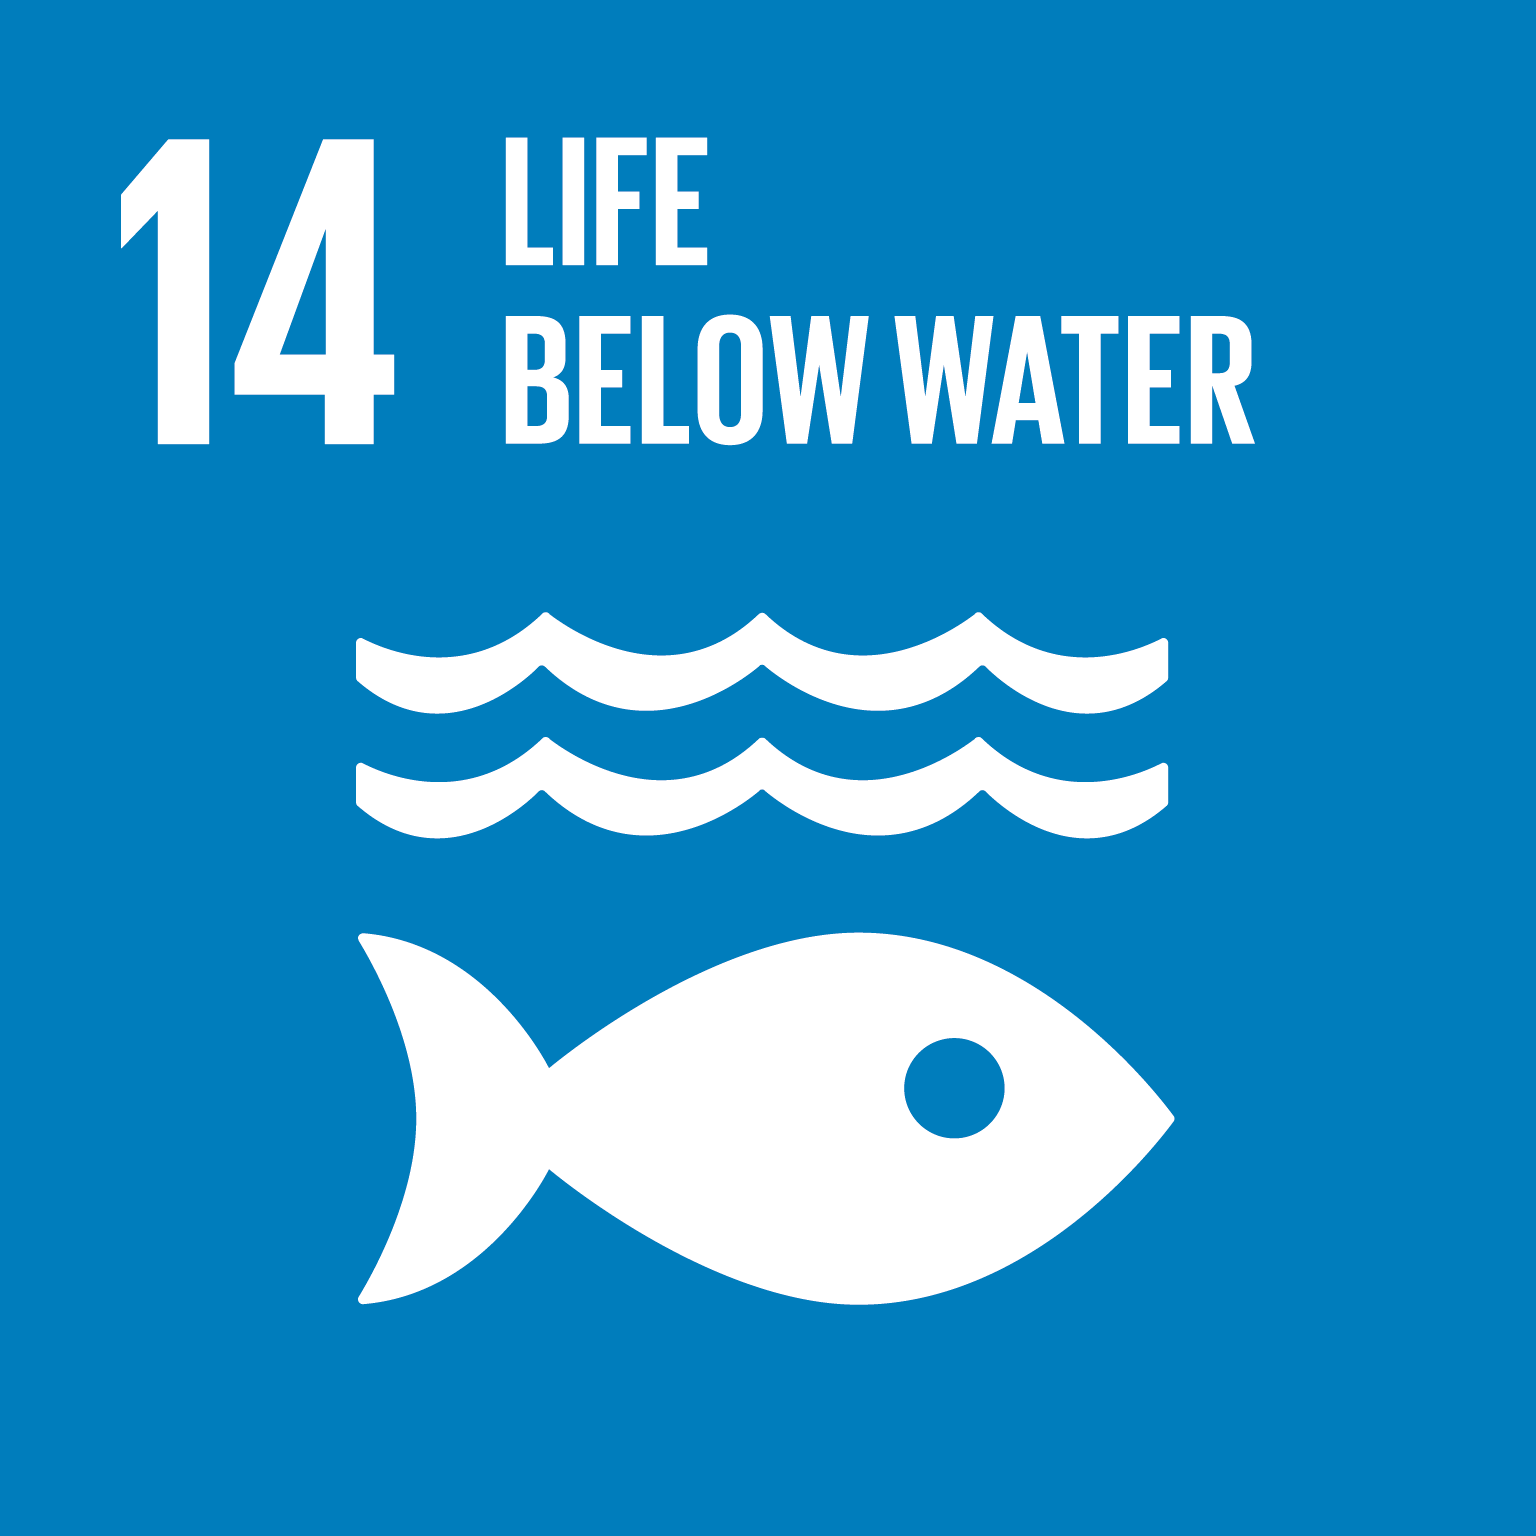 SDG Goal 14 'Life below water' © UN